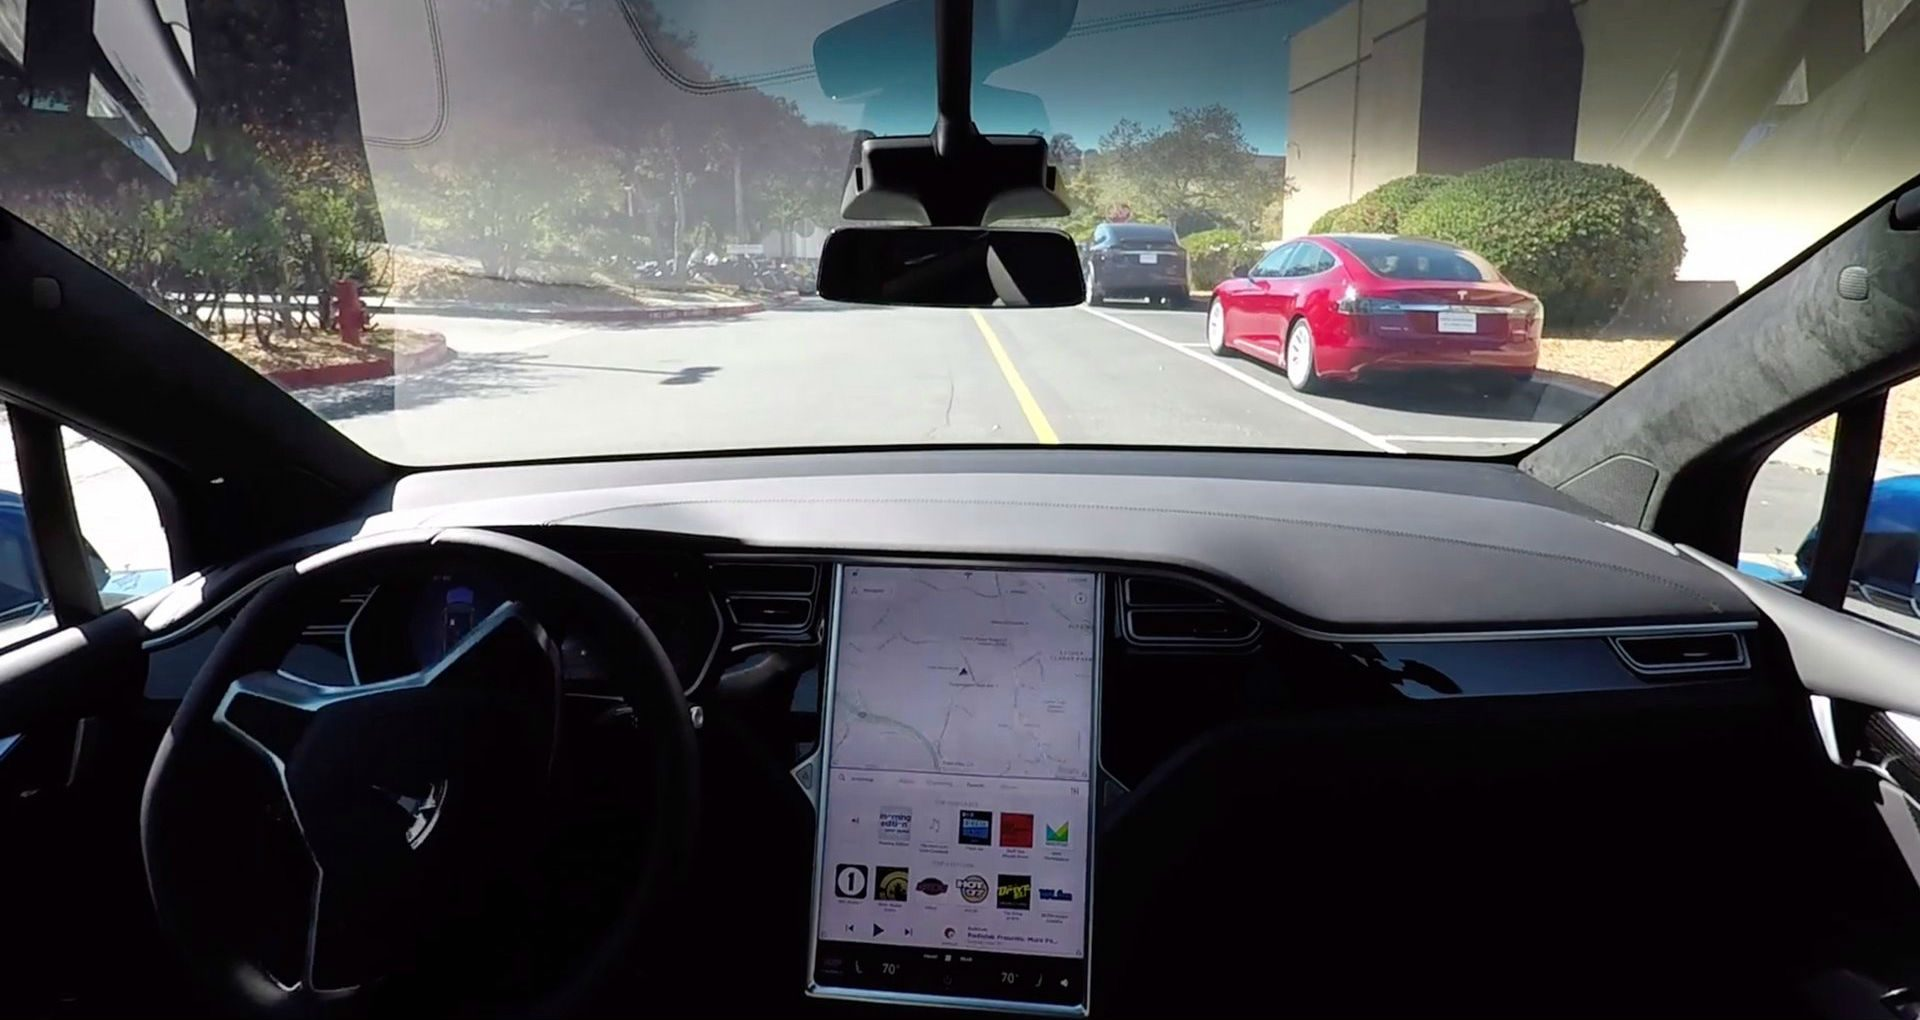 Tesla self-driving car